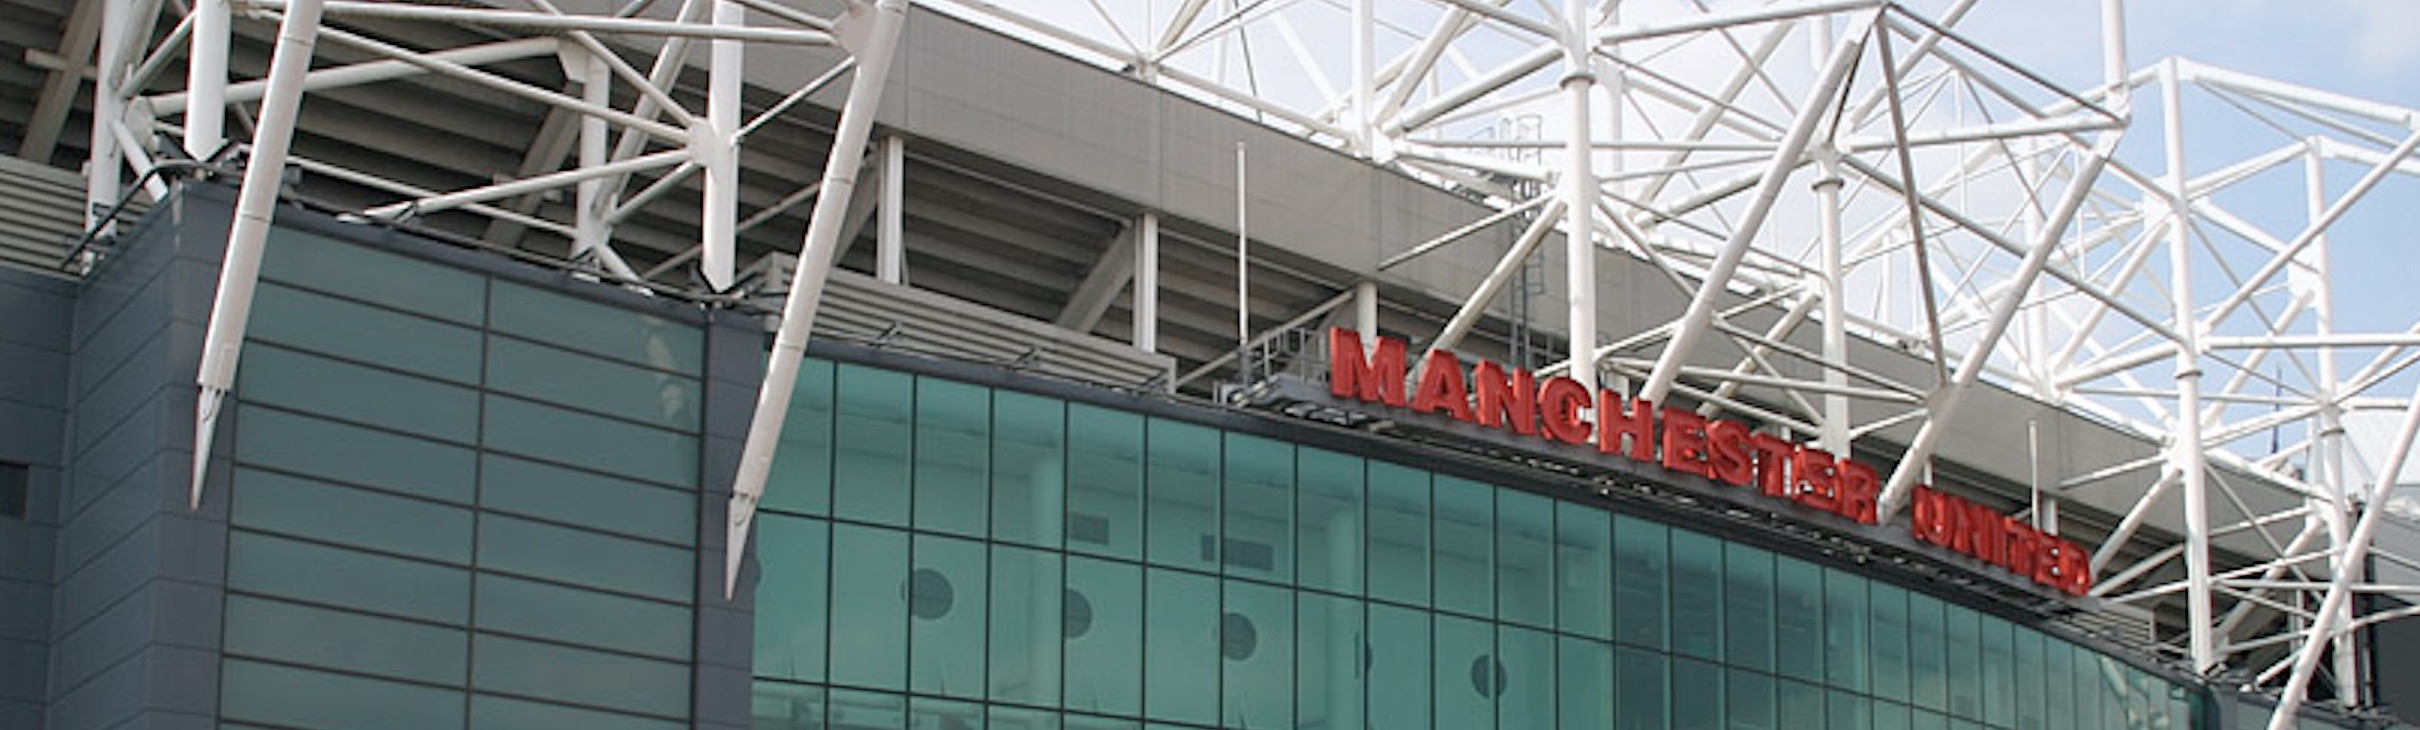 Man United V Southampton - Saturday Night Stay